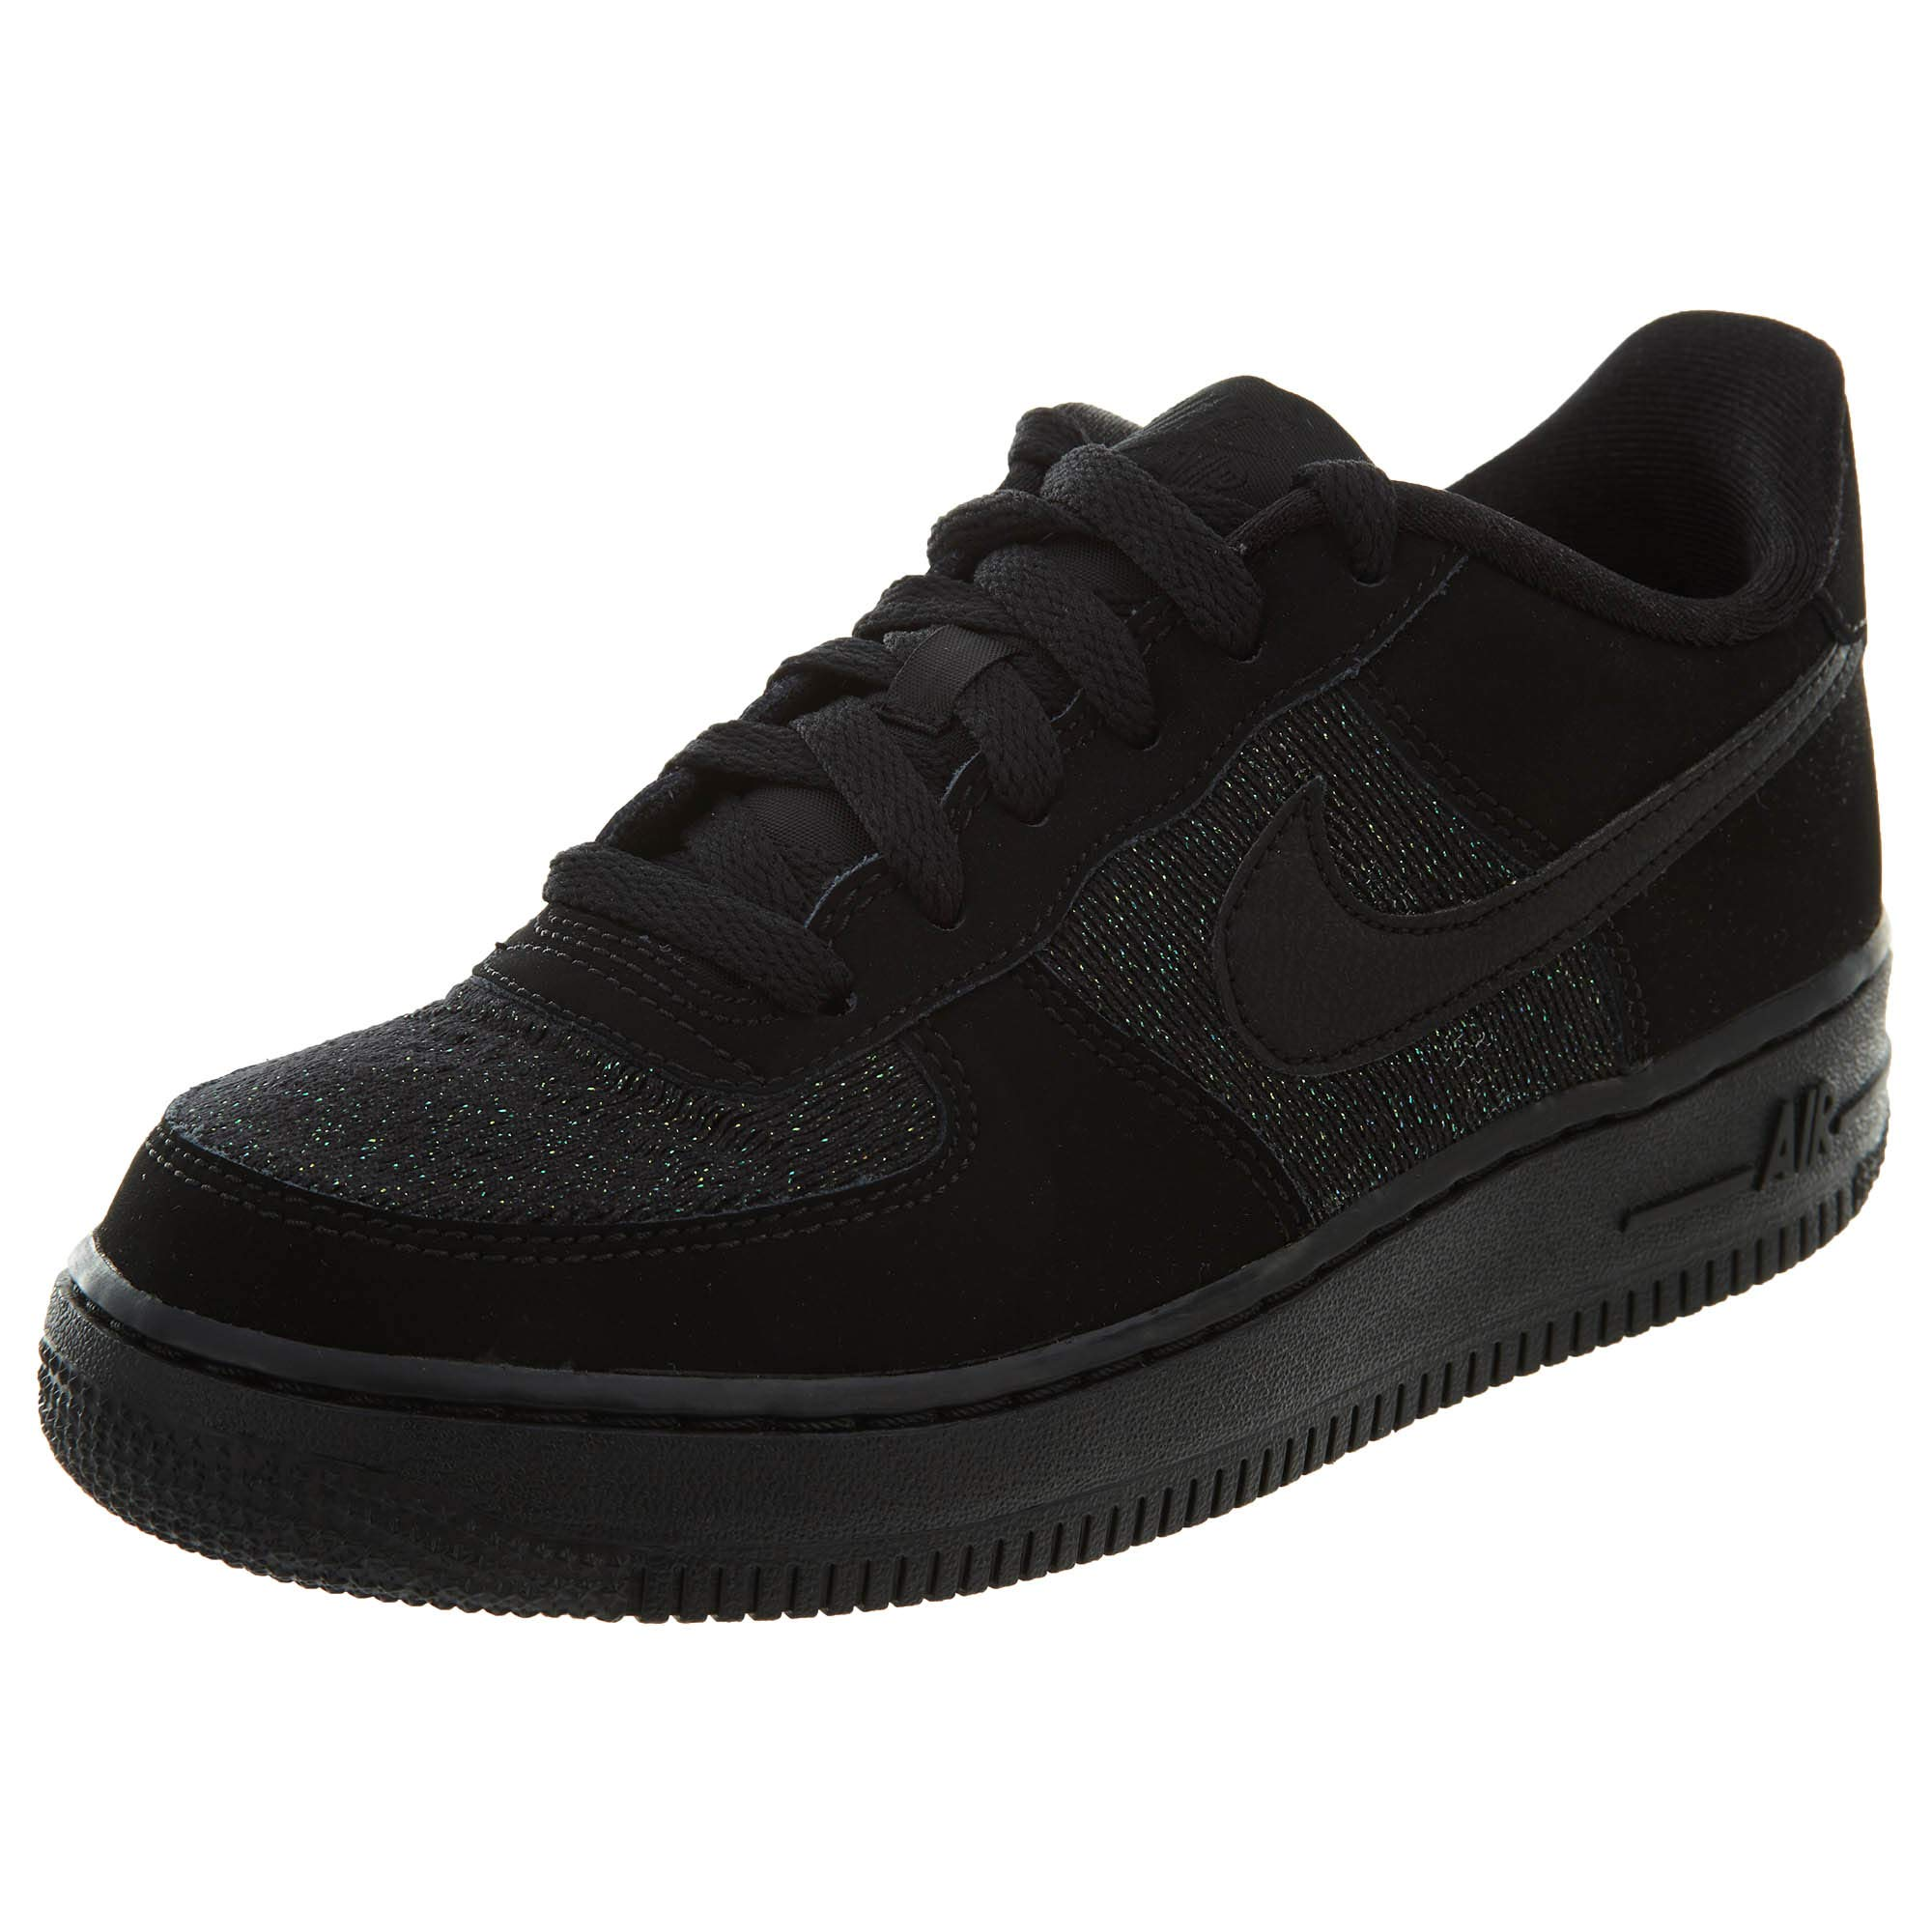 02dfae0bc Galleon - Nike Air Force 1 Lv8 Big Kids Style: 849345-002 Size: 7